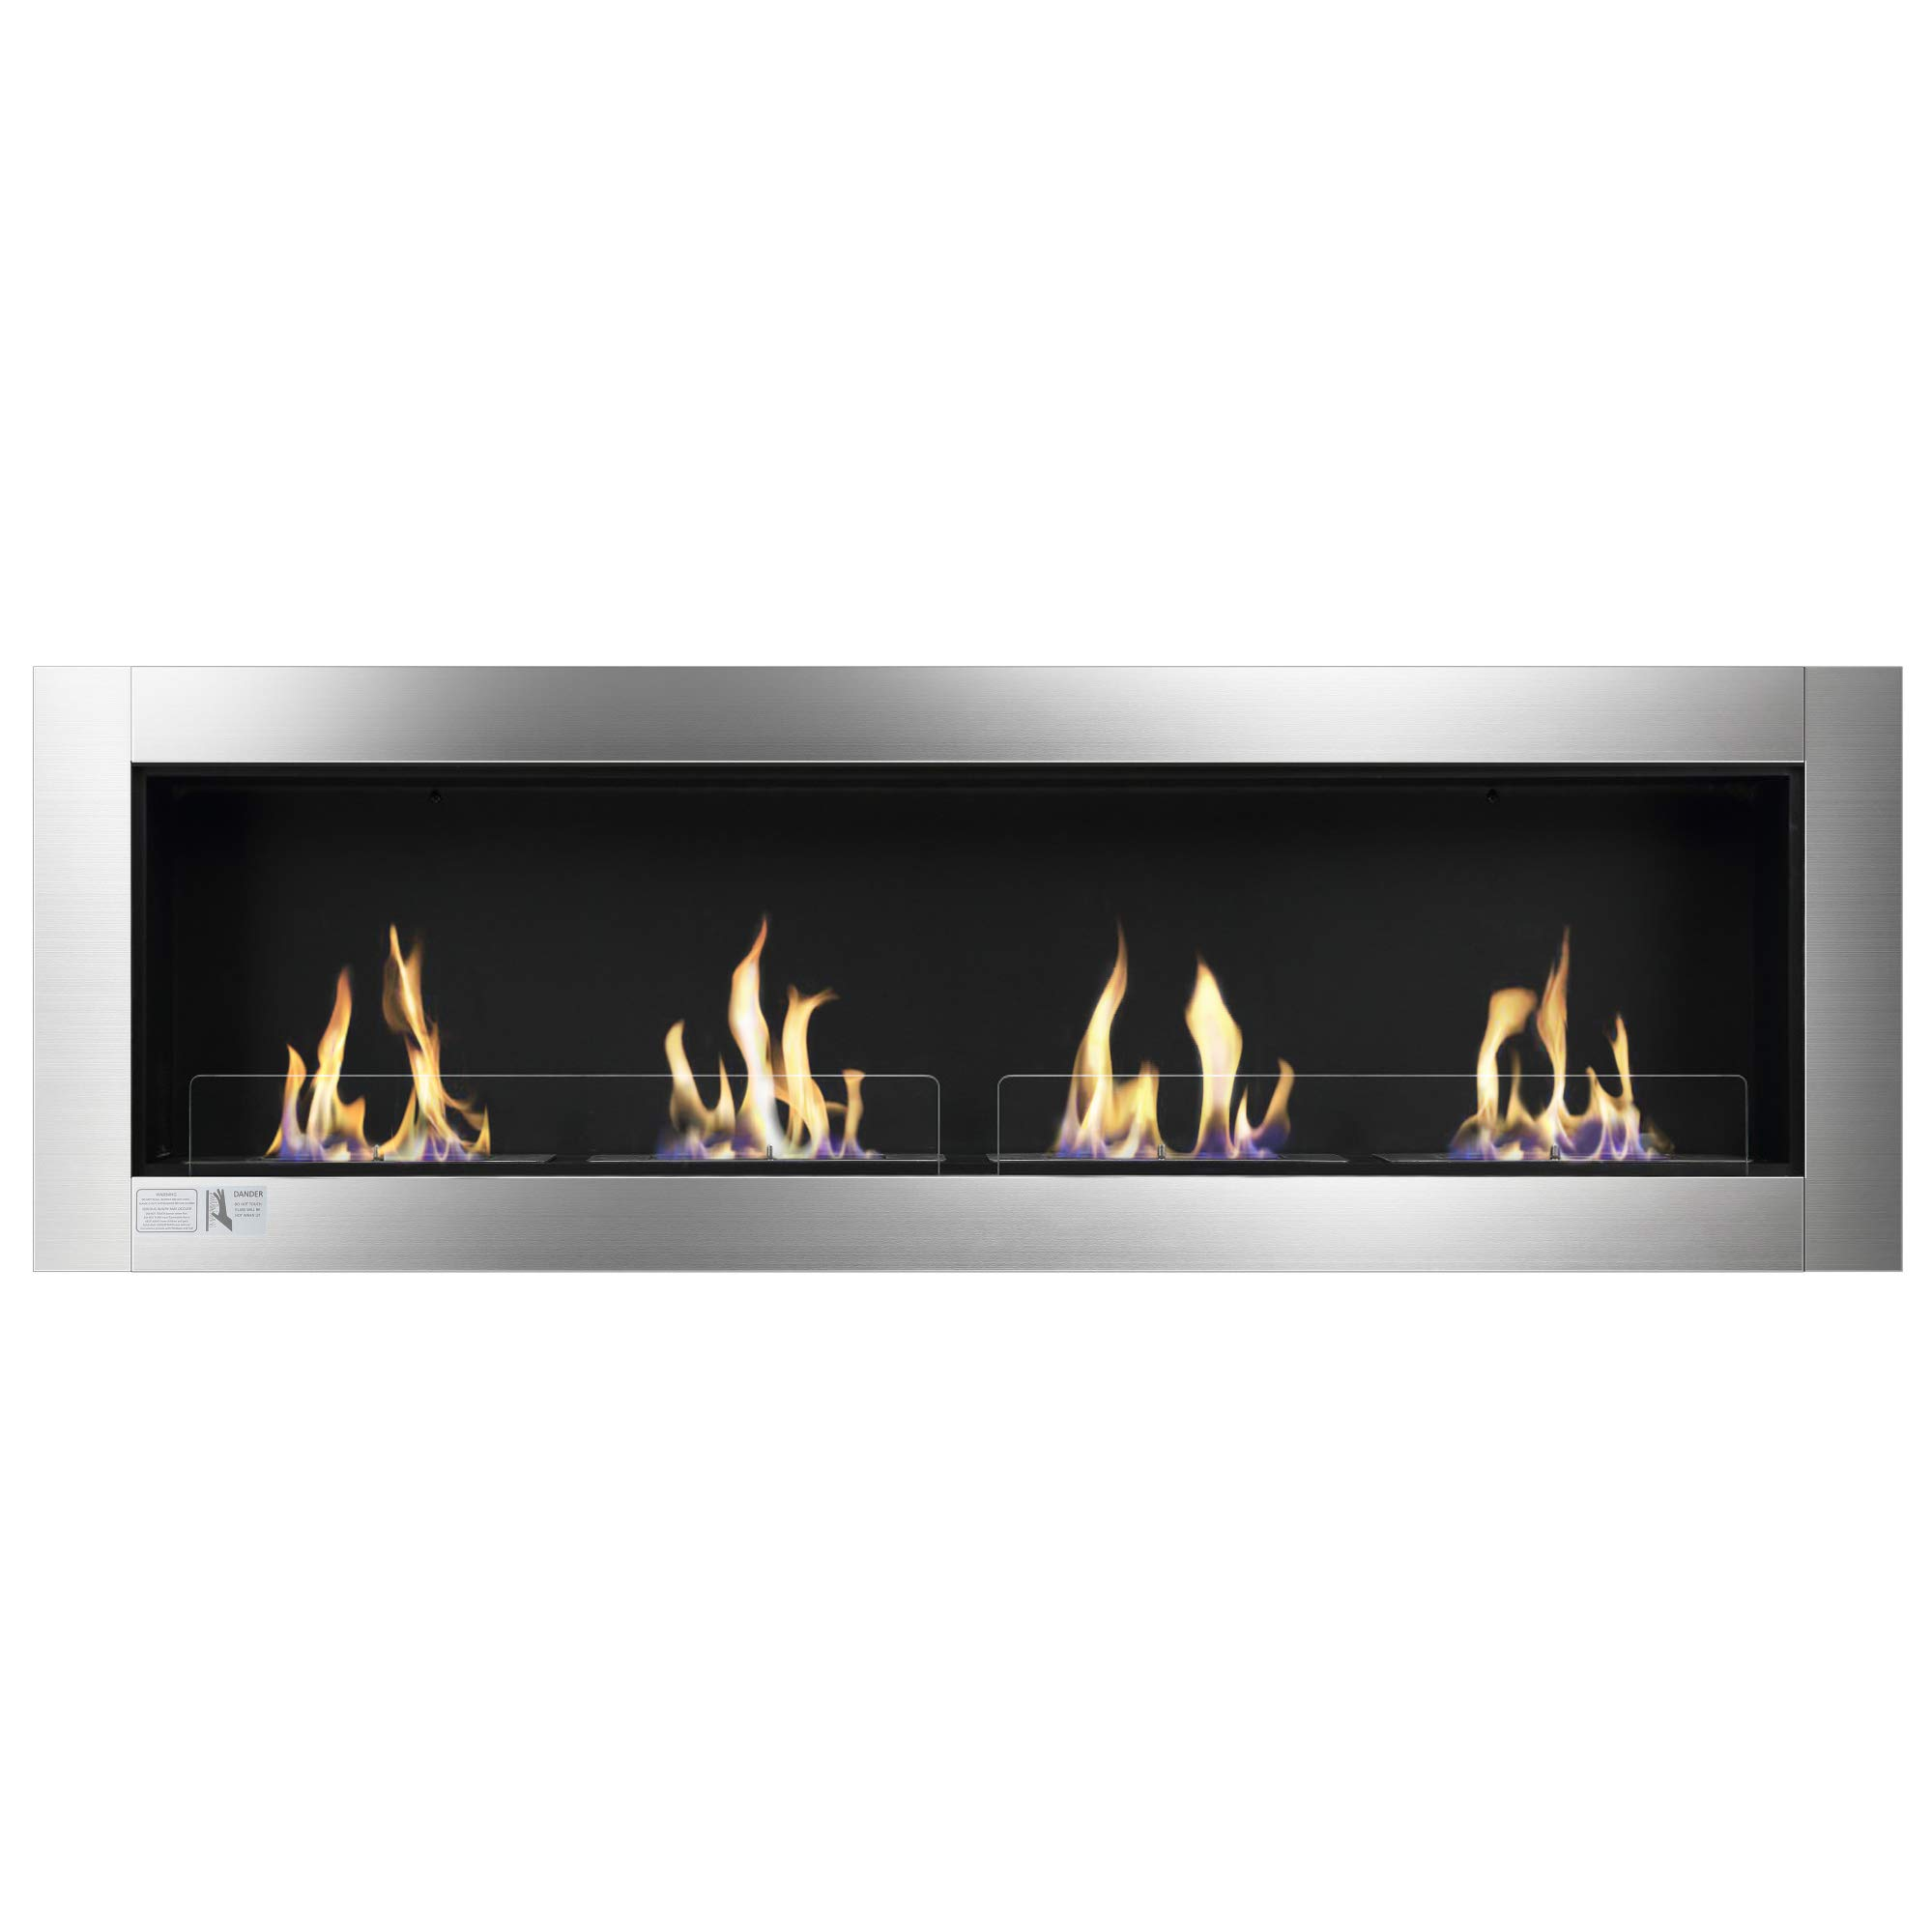 Xbeauty 66'' Ventless Built in Recessed Bio Ethanol Fireplace with Safety Glass,Indoor Wall Mounted Fireplace by Xbeauty